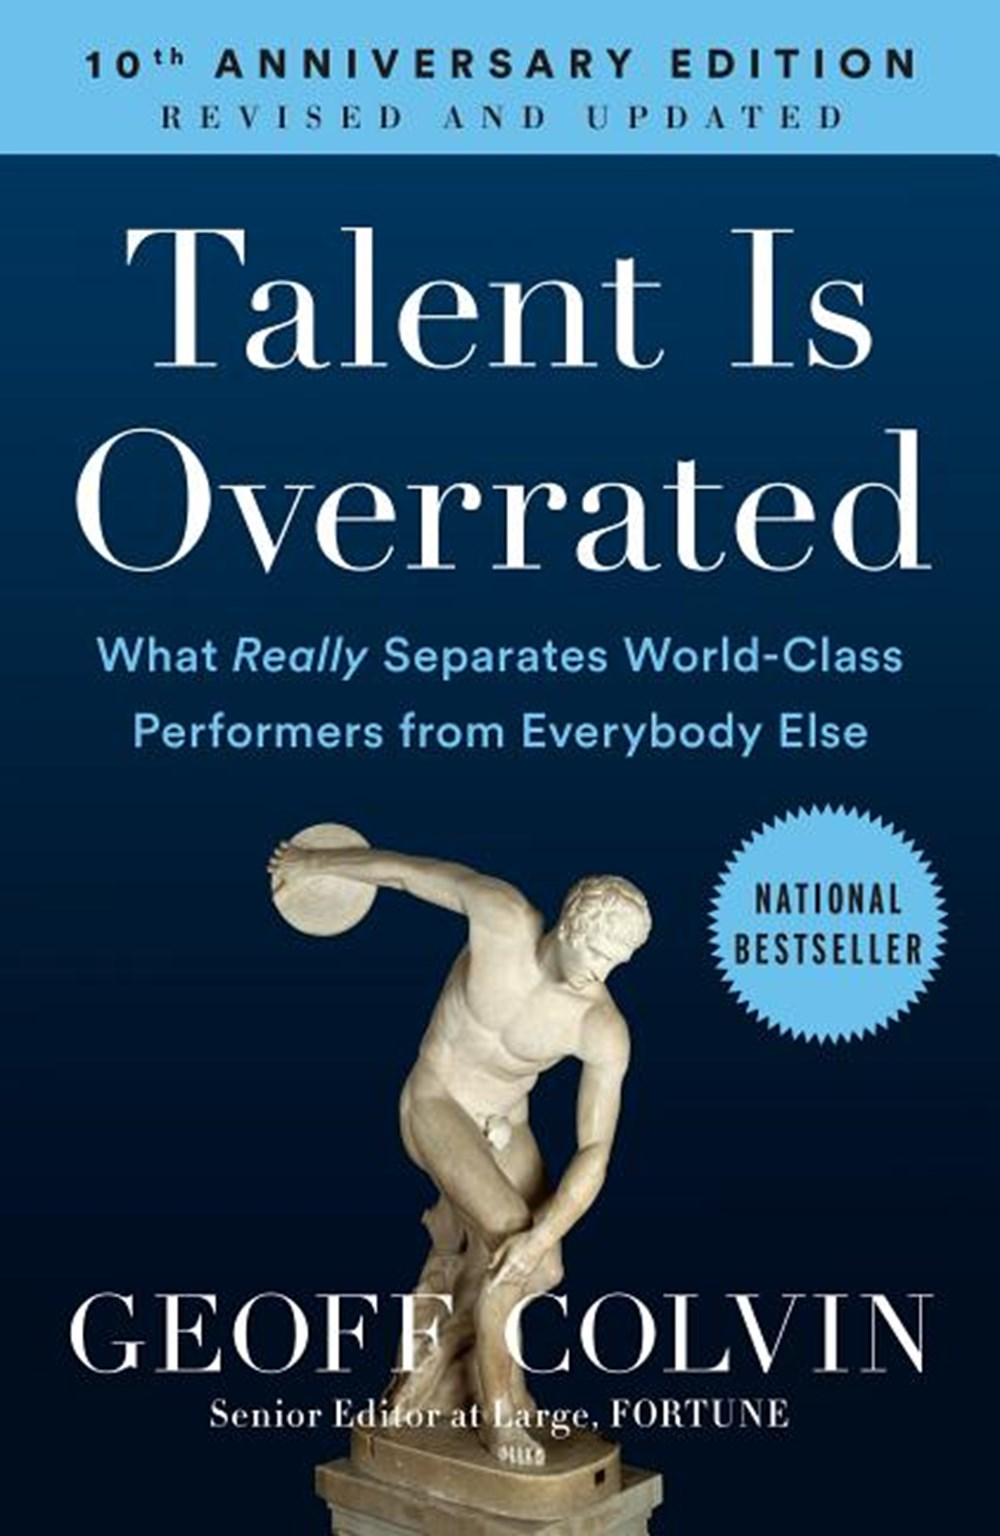 Talent Is Overrated What Really Separates World-Class Performers from Everybody Else